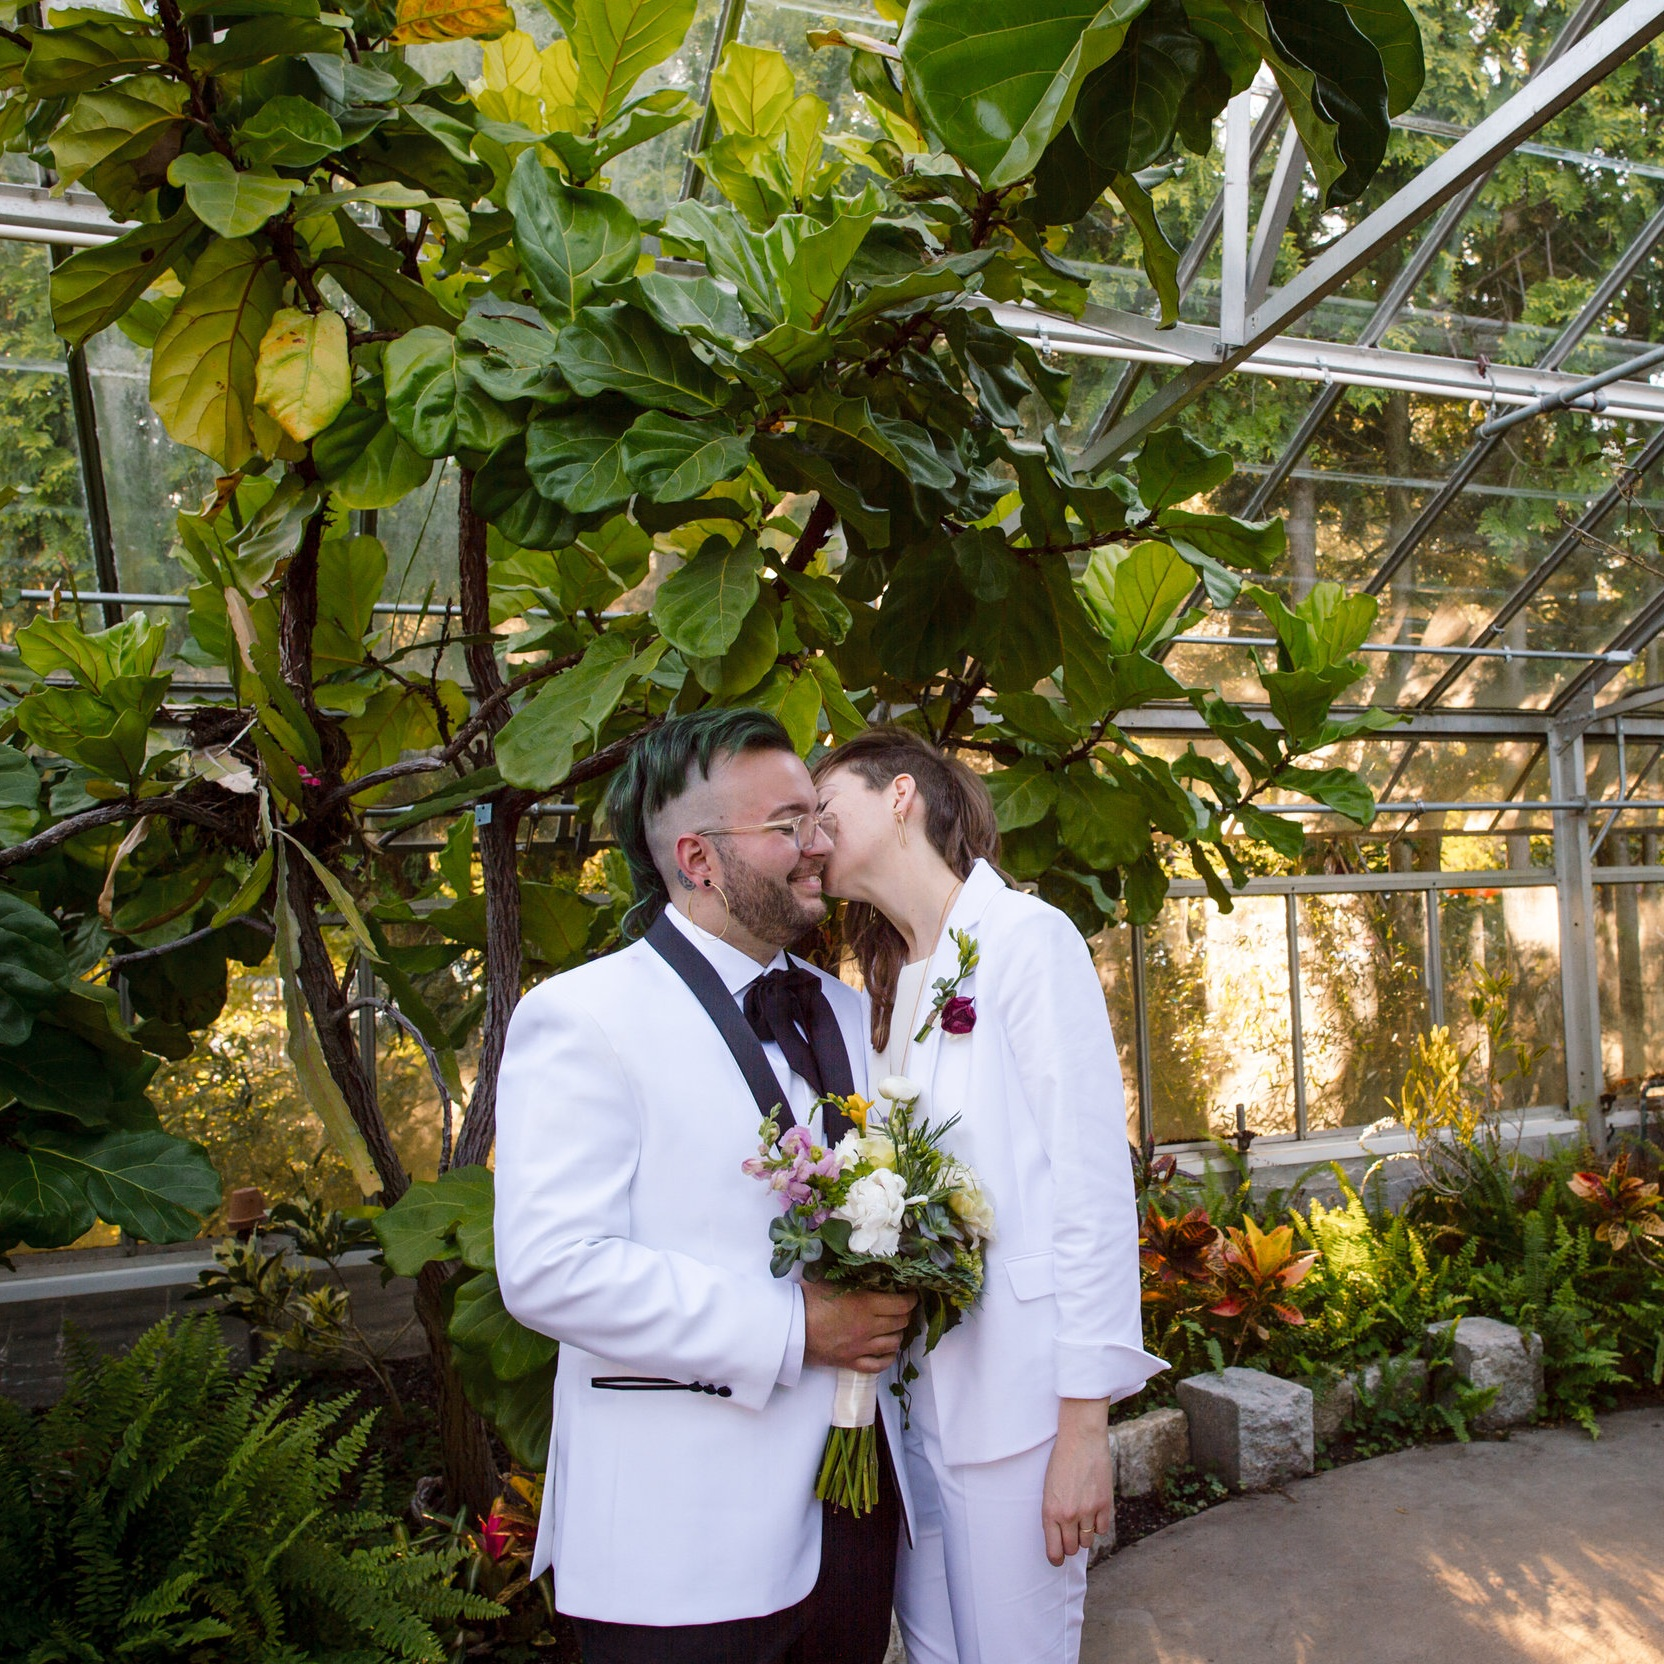 newlywed couple kiss on cheek at Roger Williams Botanical Center in Providence Rhode Island